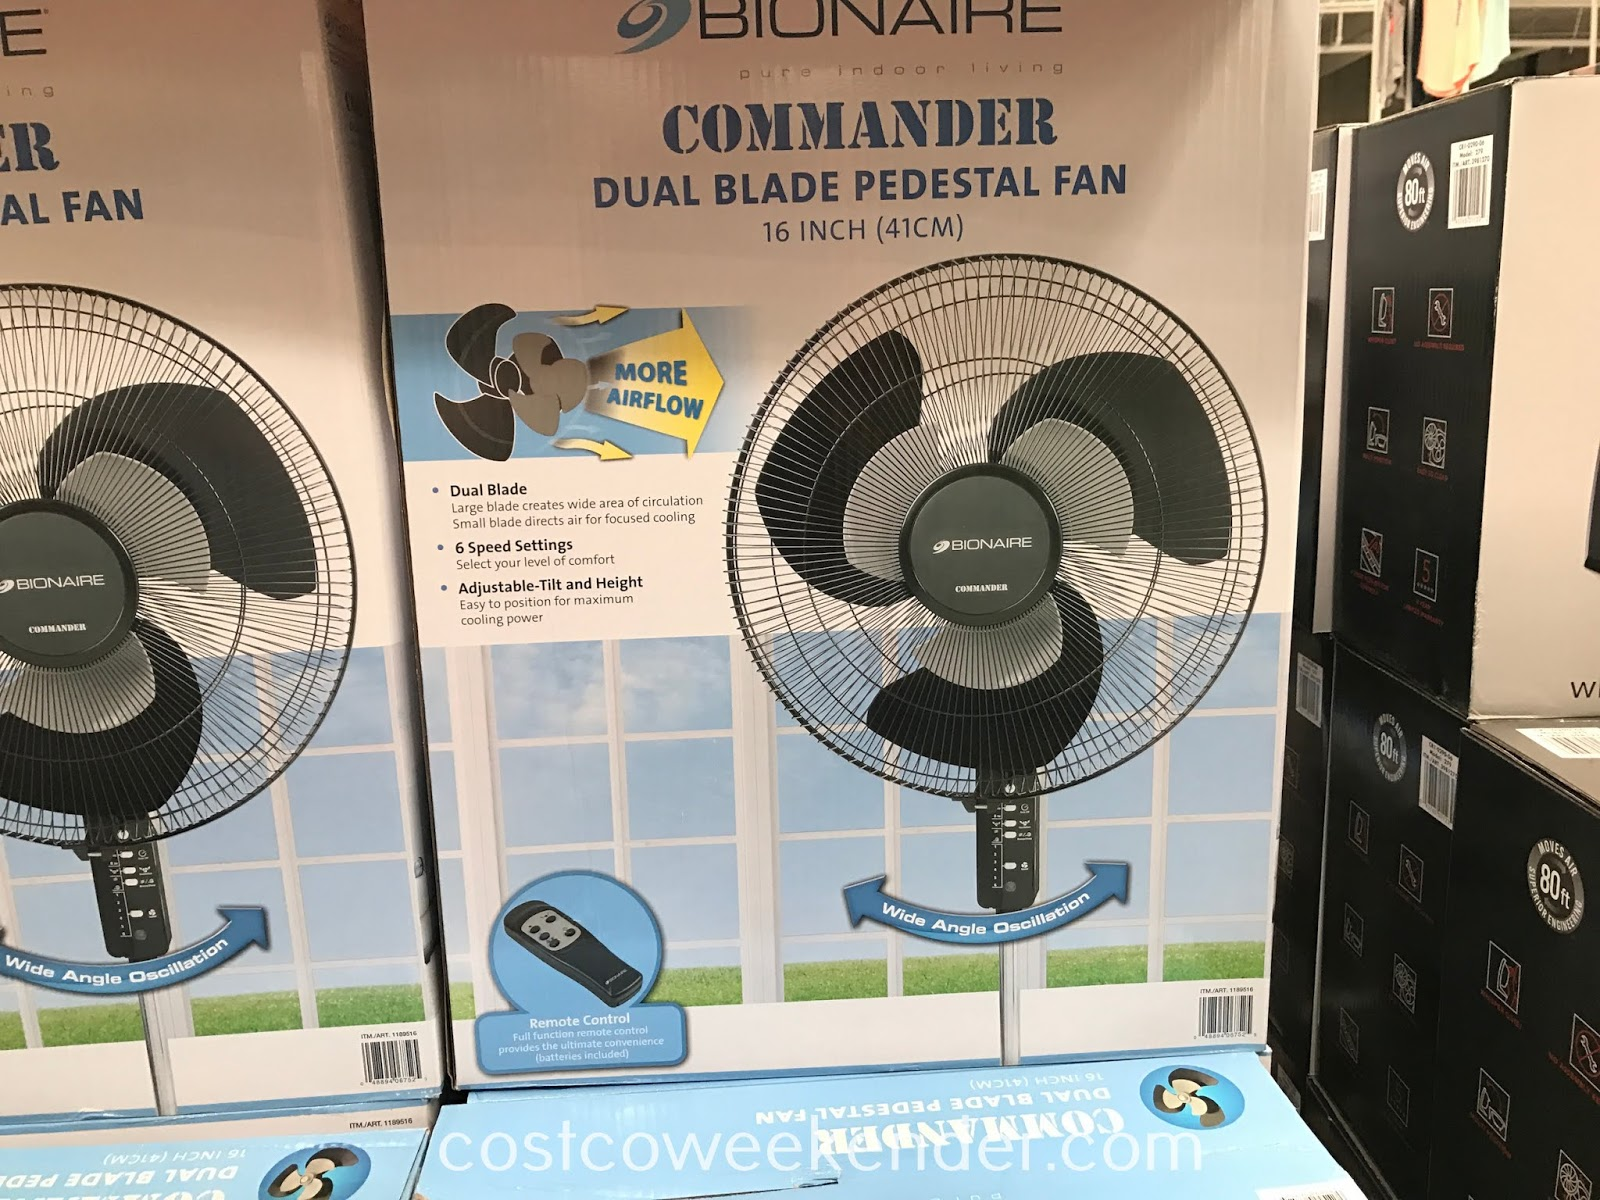 Cool a room and make it more comfortable for yourself with the Bionaire Commander Dual Blade Pedestal Fan